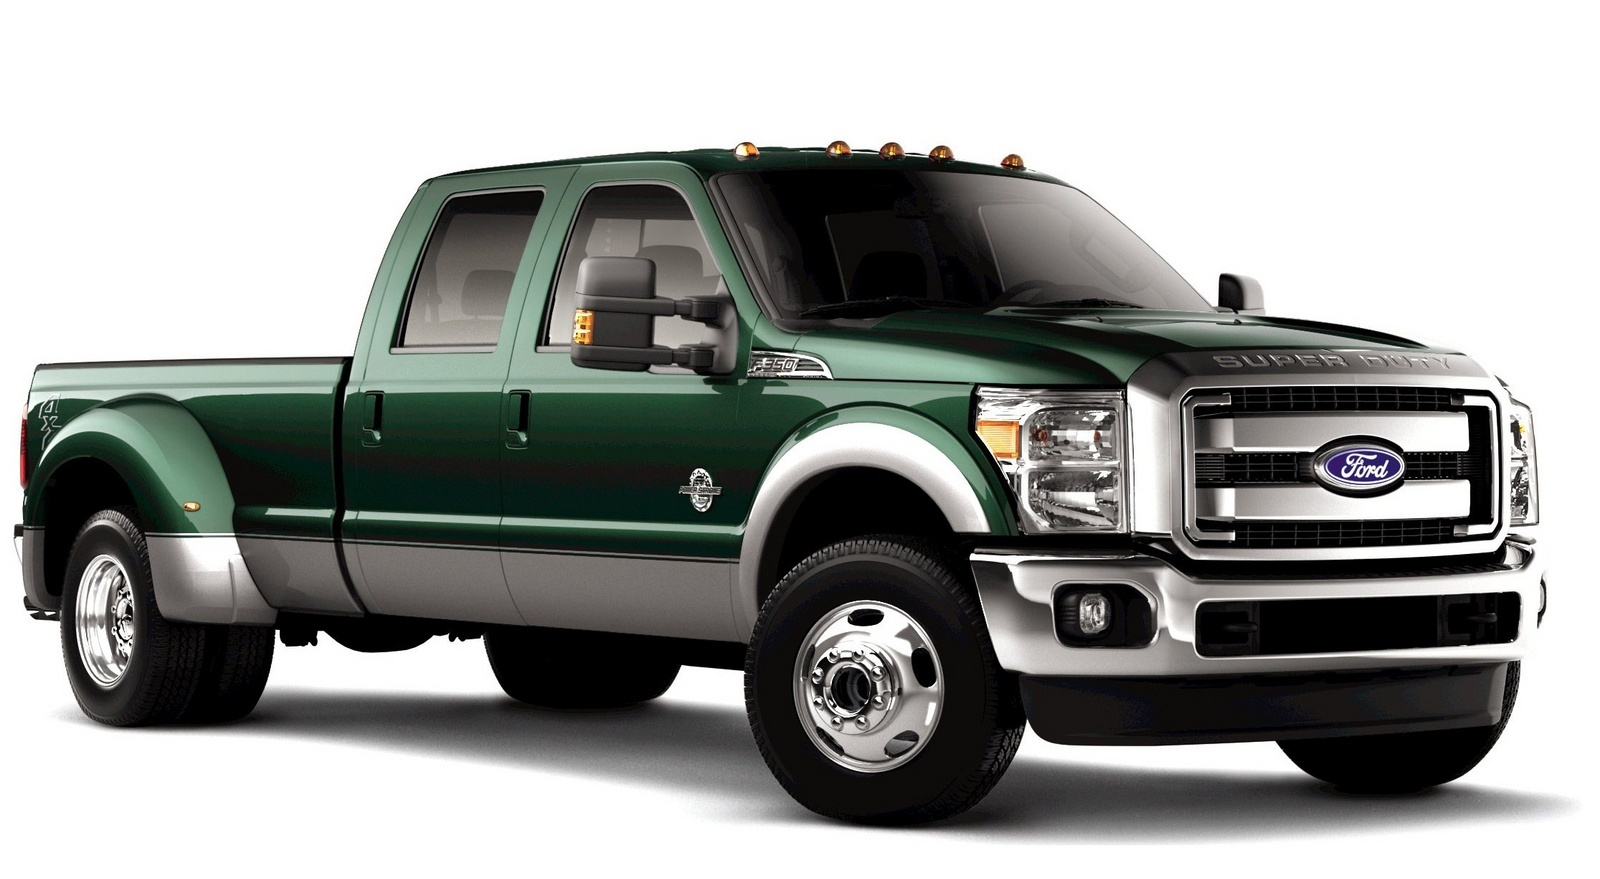 2011 Ford F-350 Super Duty - Overview